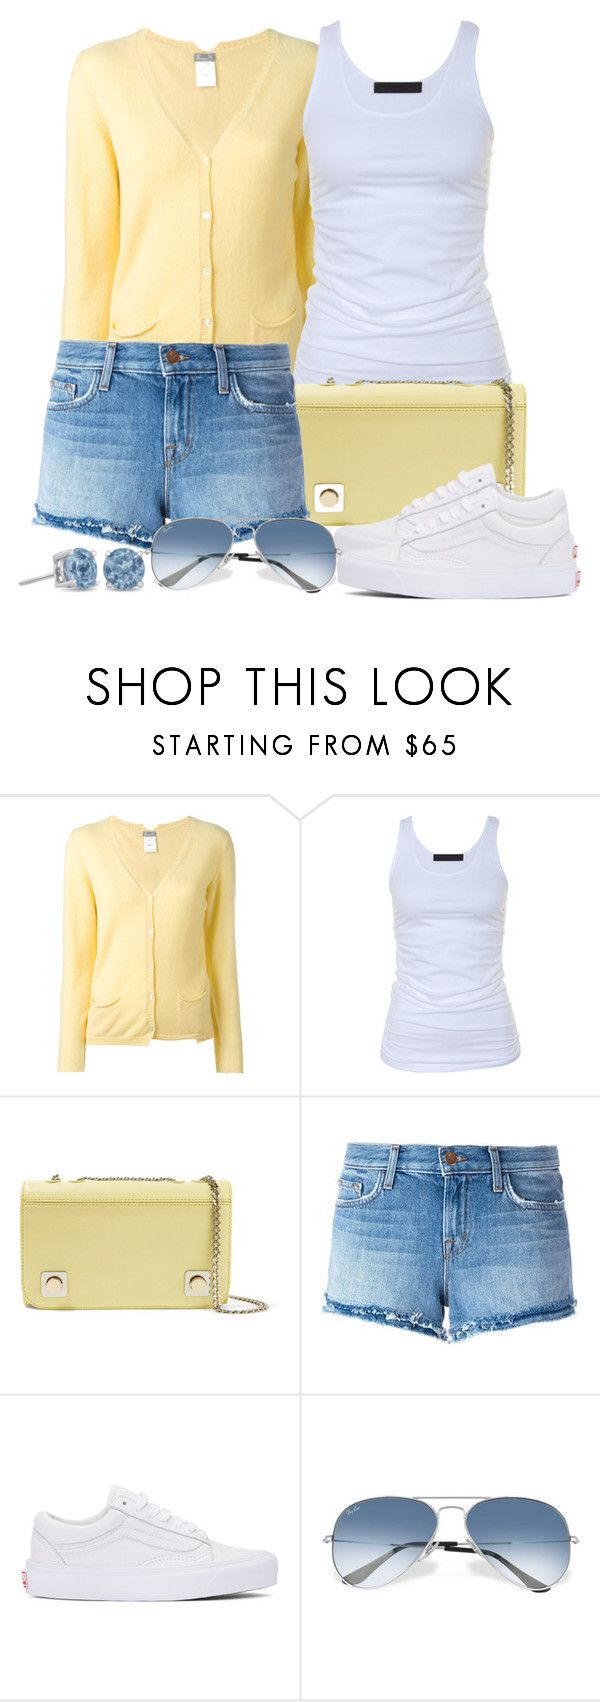 """""""Untitled #1458"""" by gallant81 ❤ liked on Polyvore featuring KristenseN du Nord, Tusnelda Bloch, Carven, J Brand, Vans and Ray-Ban"""